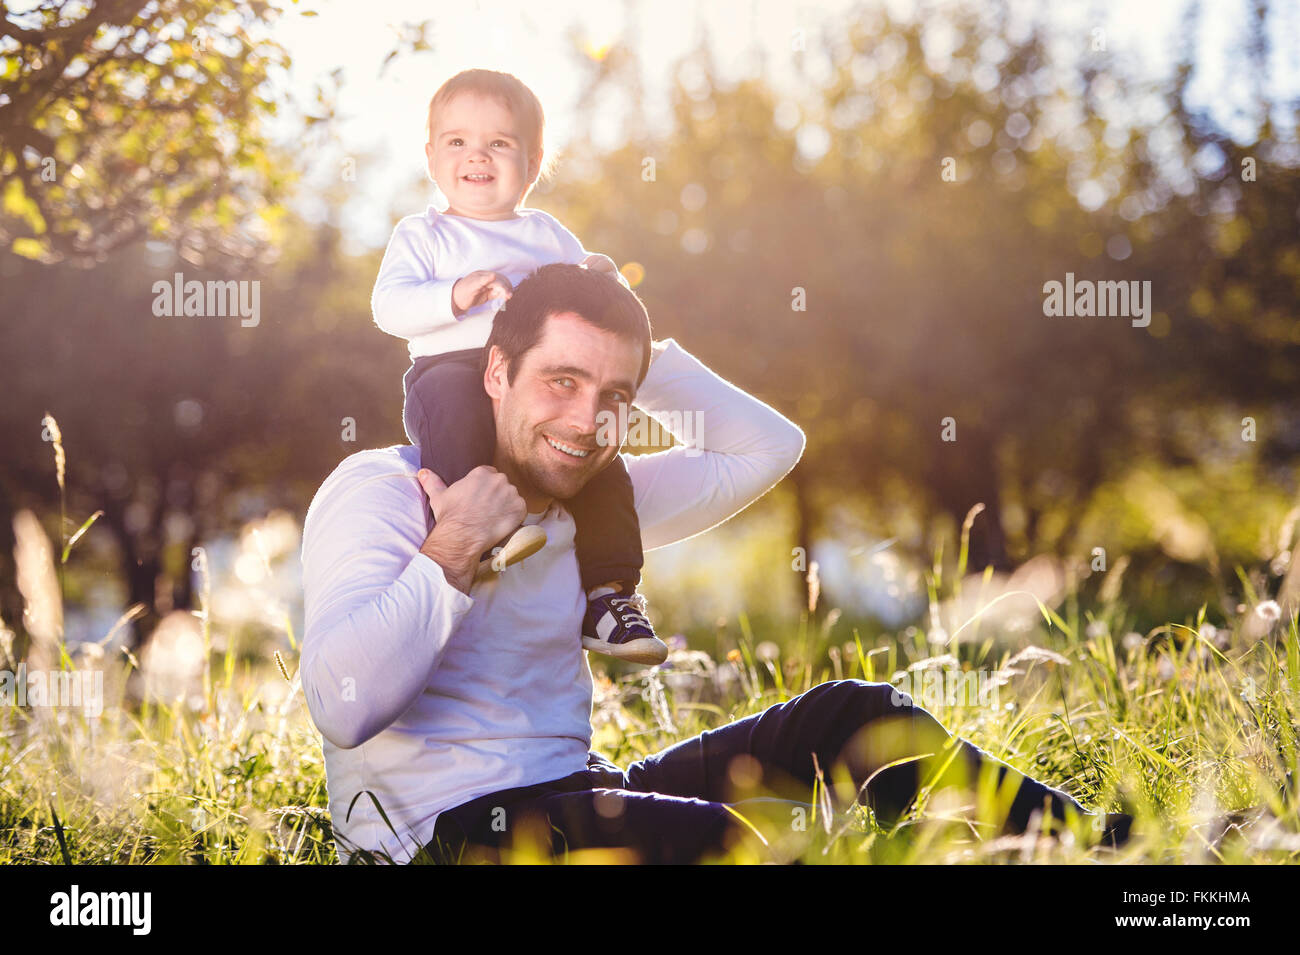 Father carrying son on shoulders, sitting on the grass - Stock Image